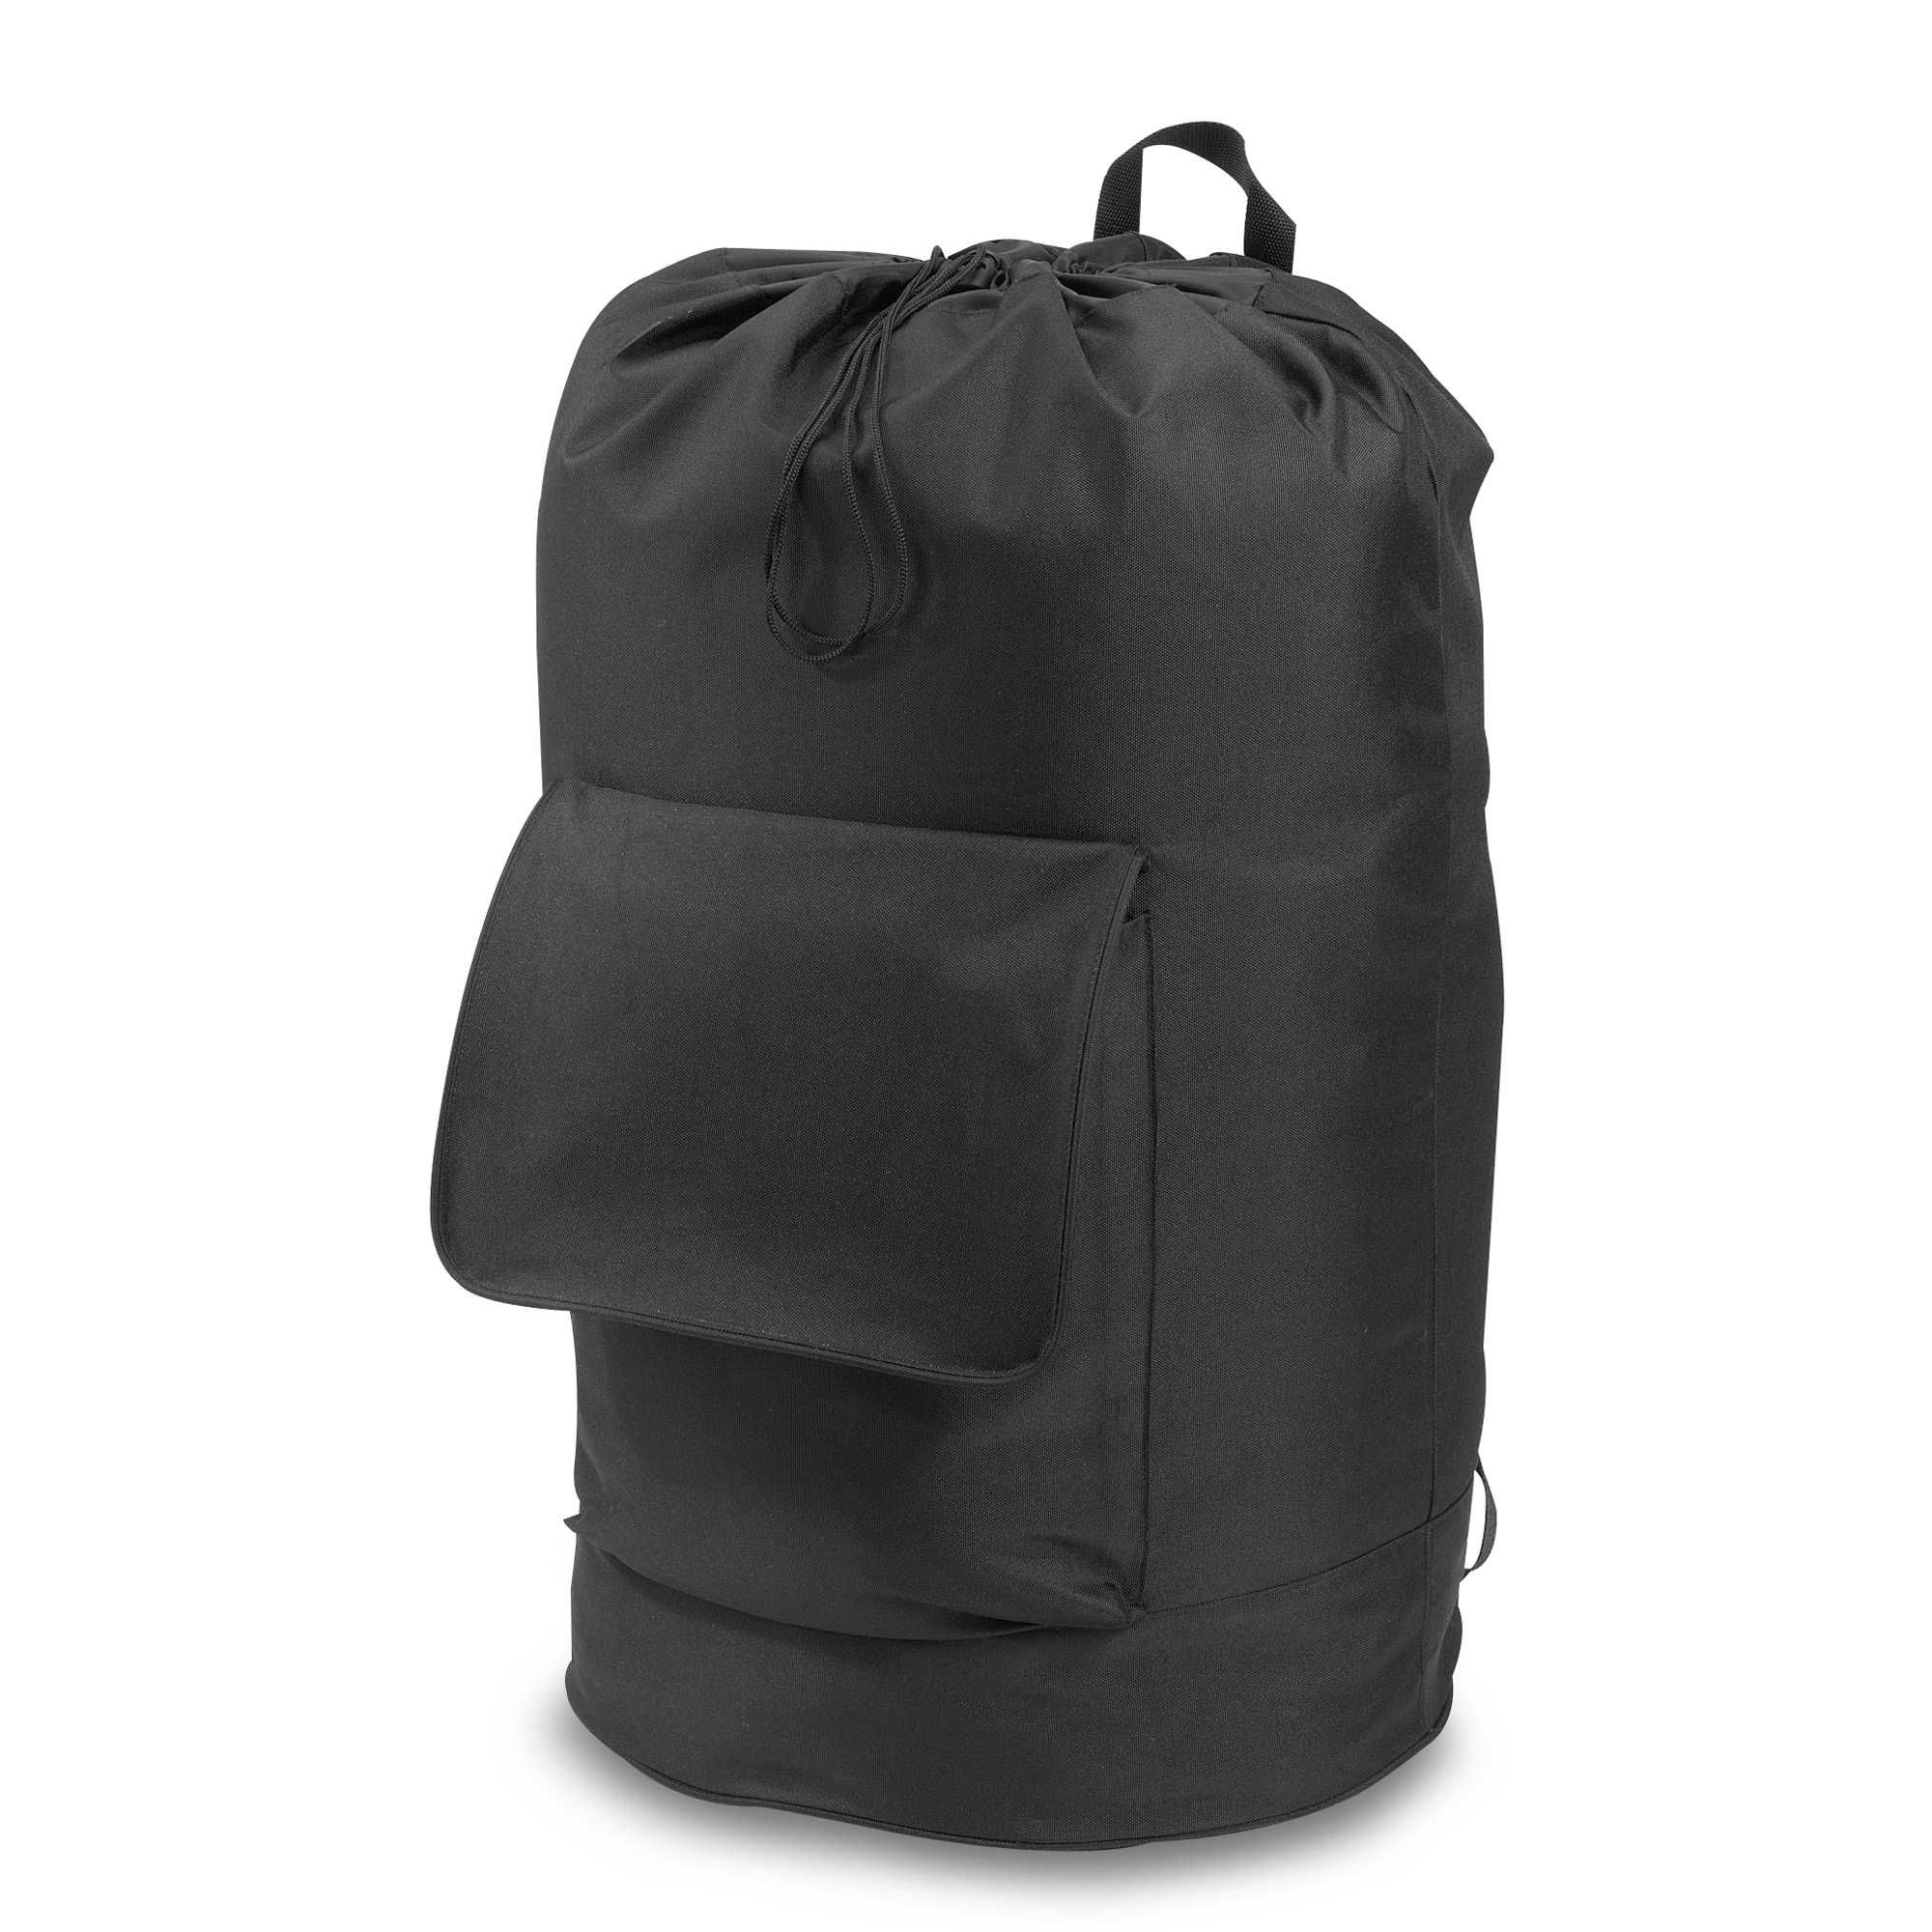 Backpack Laundry Bag In Black Laundry Bag Bags